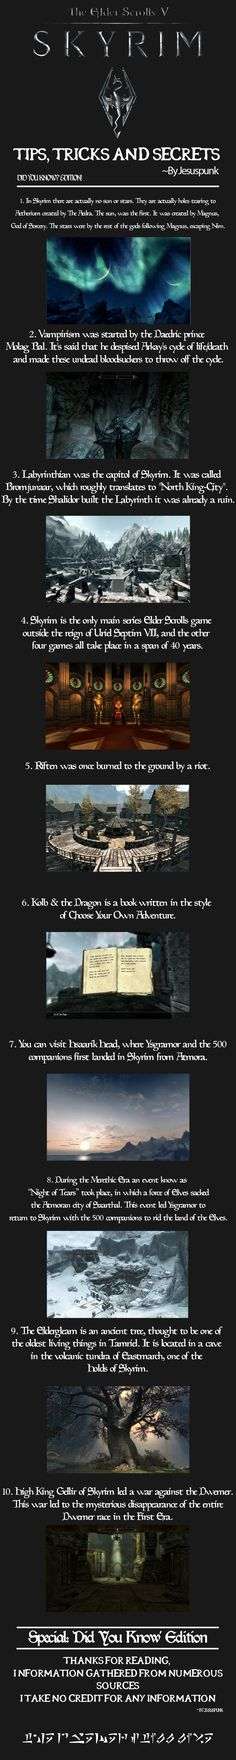 Skyrim - Tips, Tricks & Secrets Special Edition